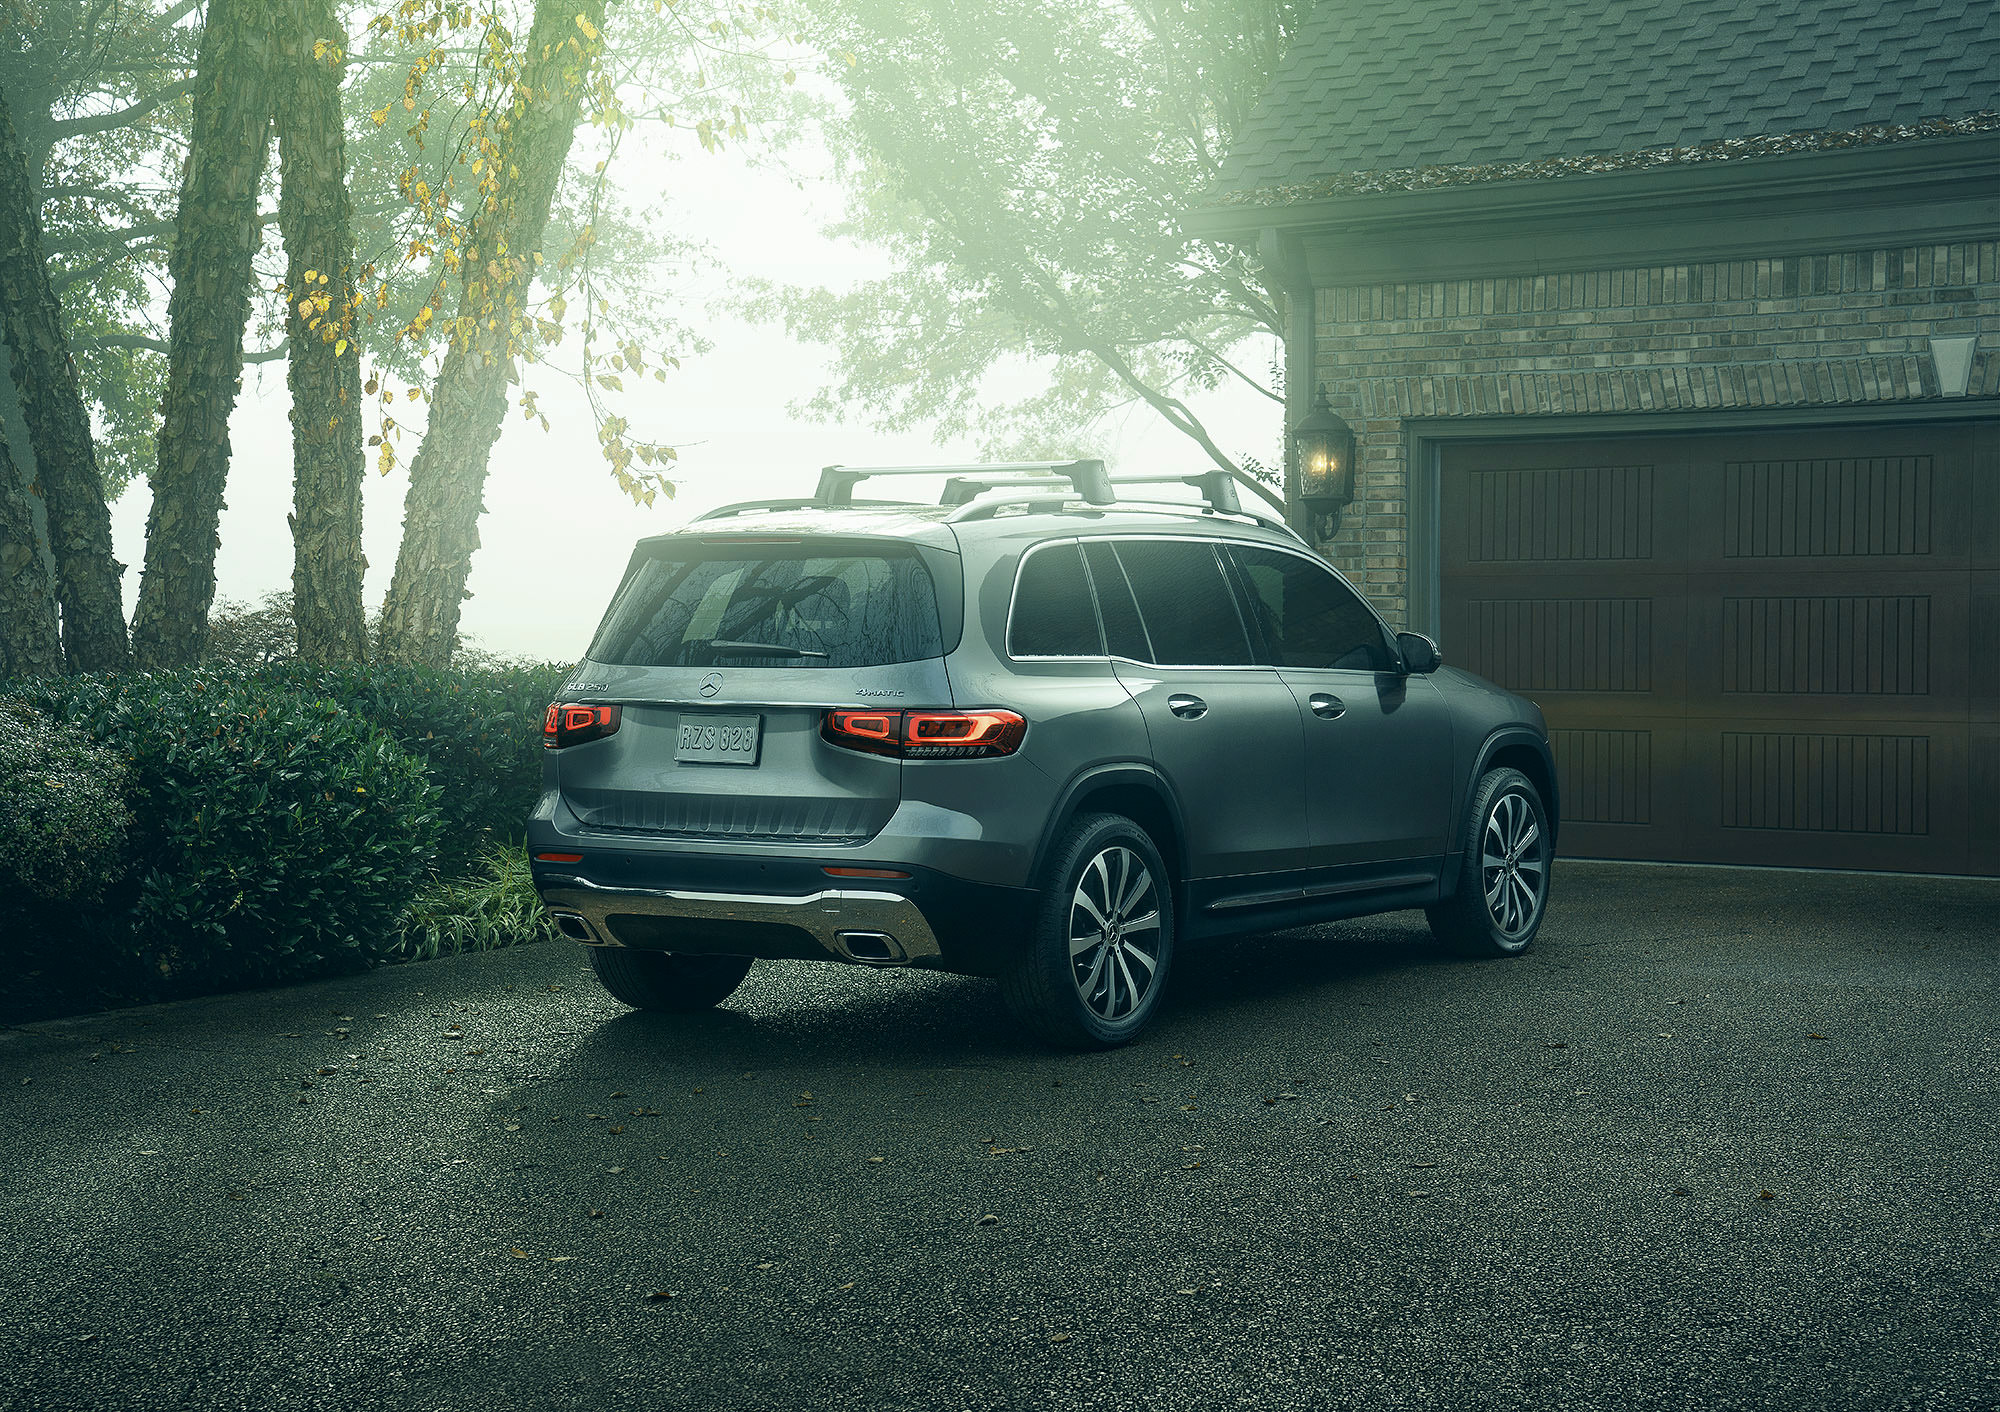 Mercedes-Benz GLB commercial photography